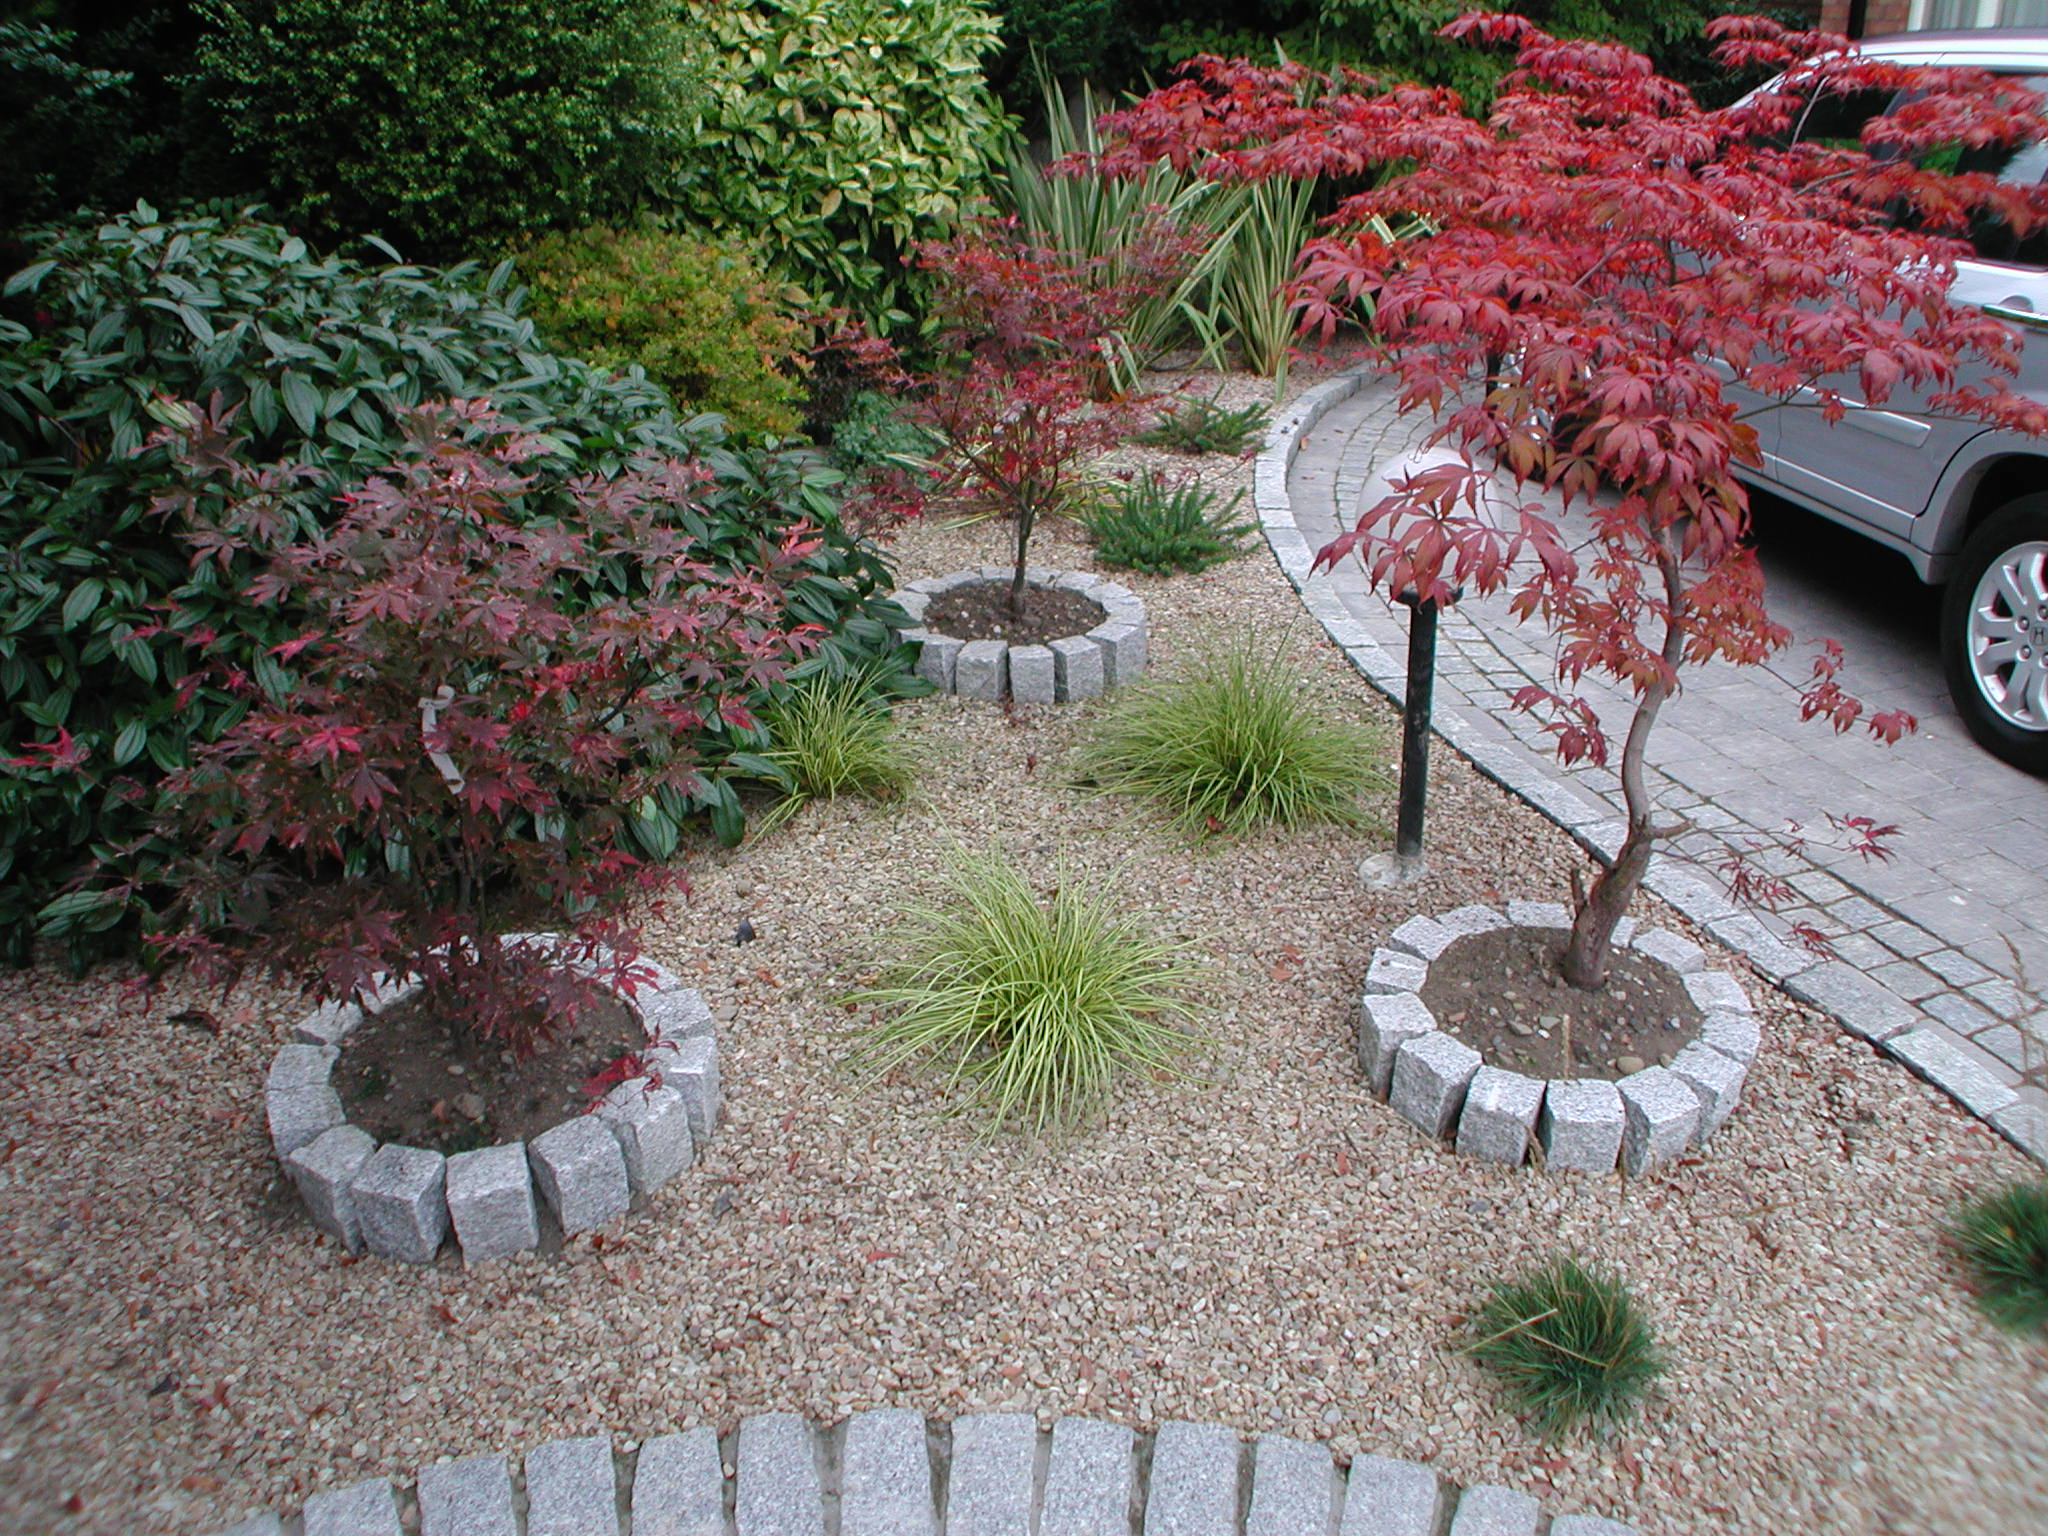 Low maintenance garden design dublin for Low maintenance garden design